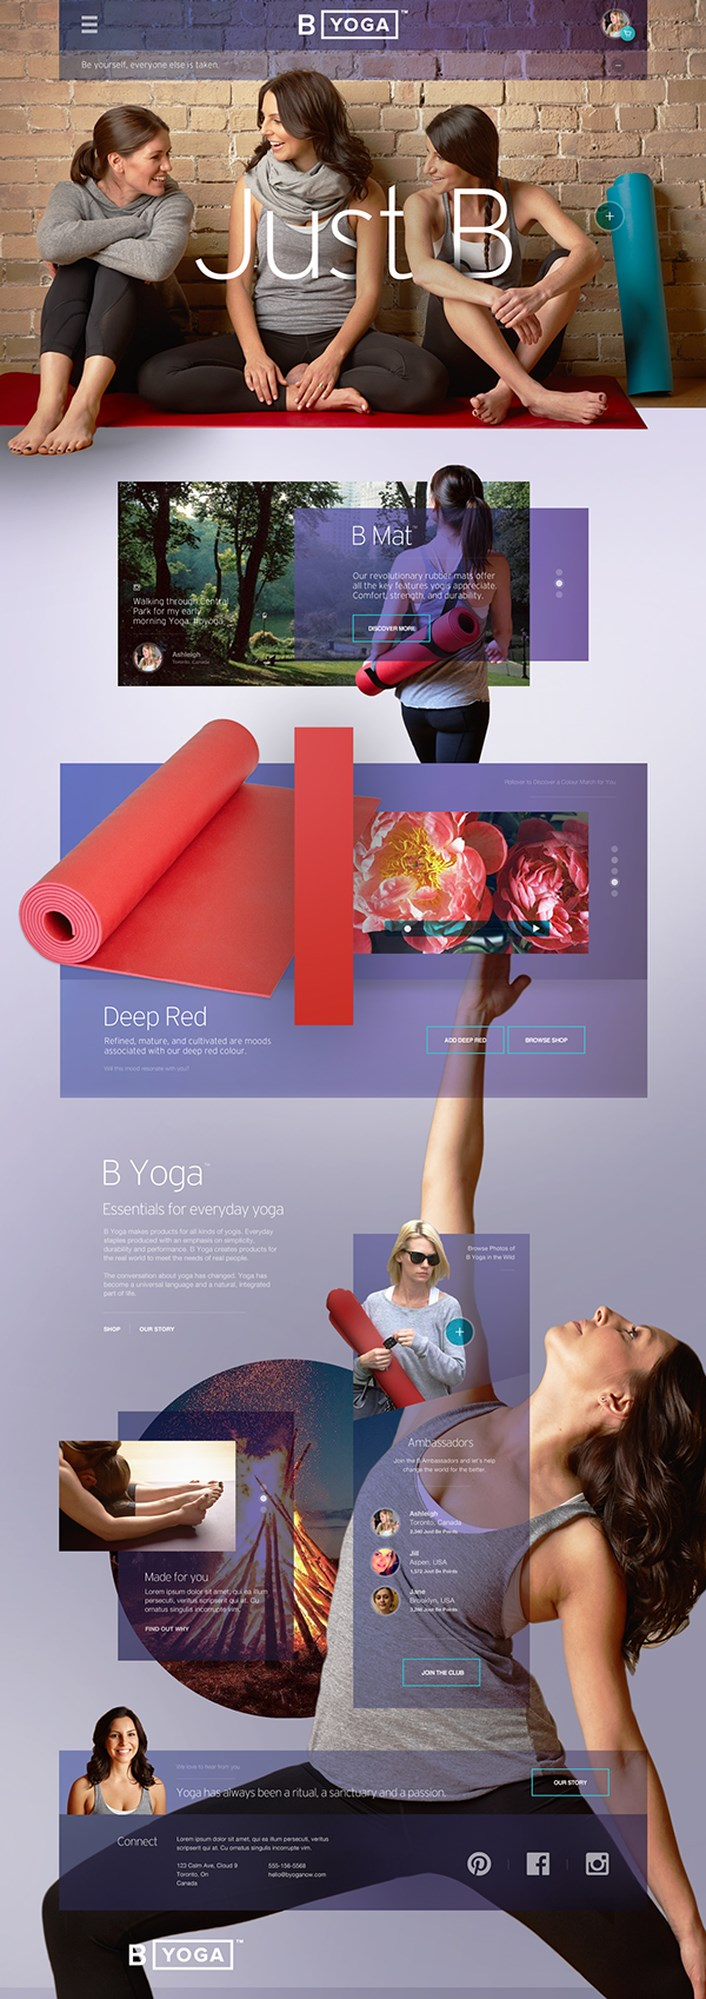 B_Yoga UI UX Design Inspiration